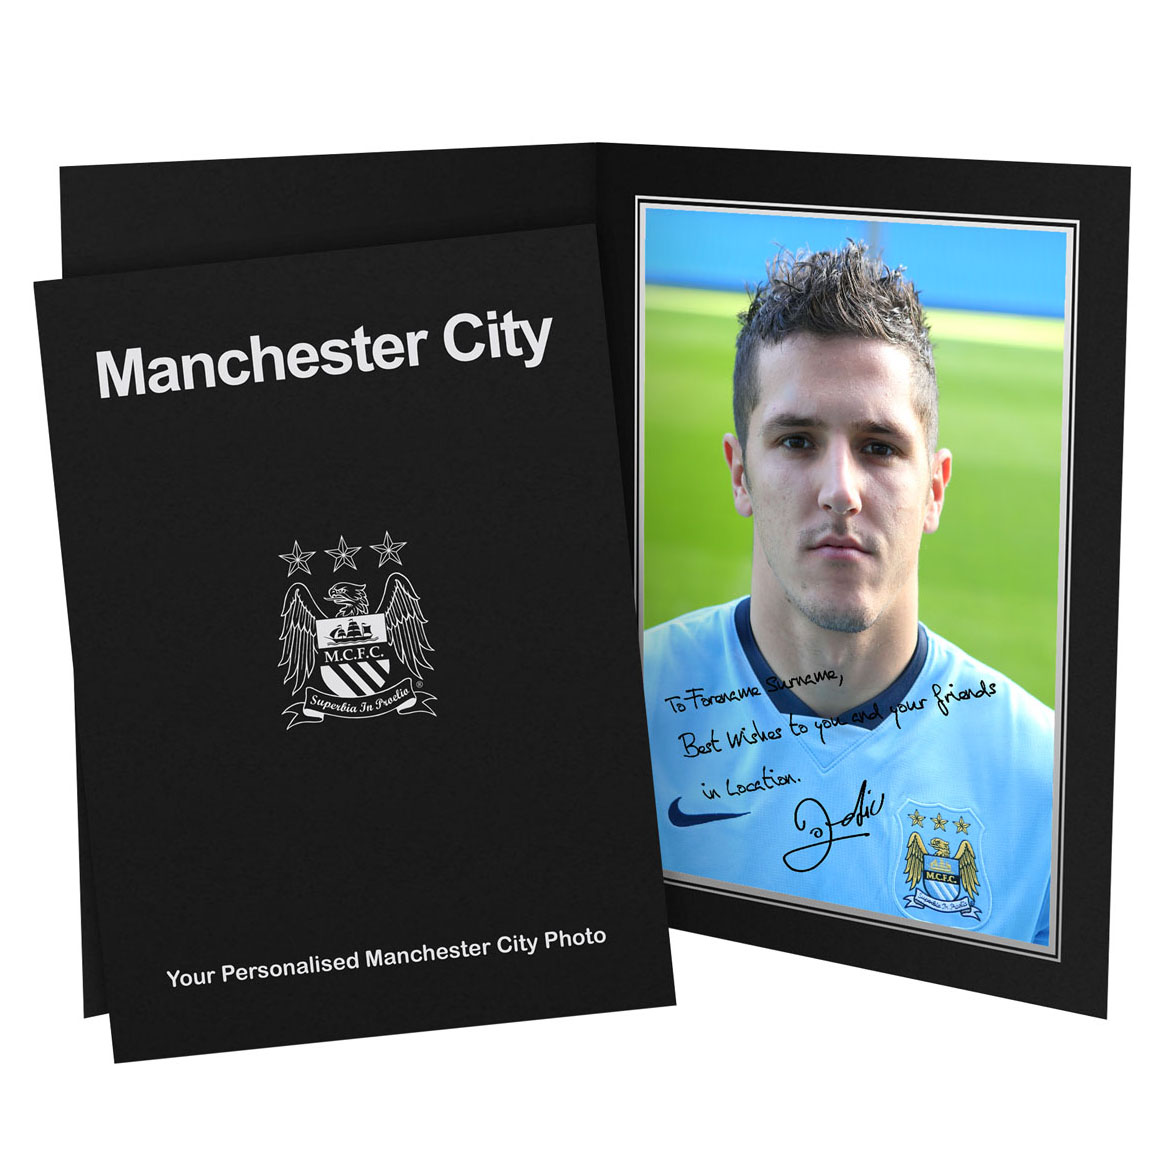 Manchester City Personalised Signature Photo in Presentation Folder - Jovetic